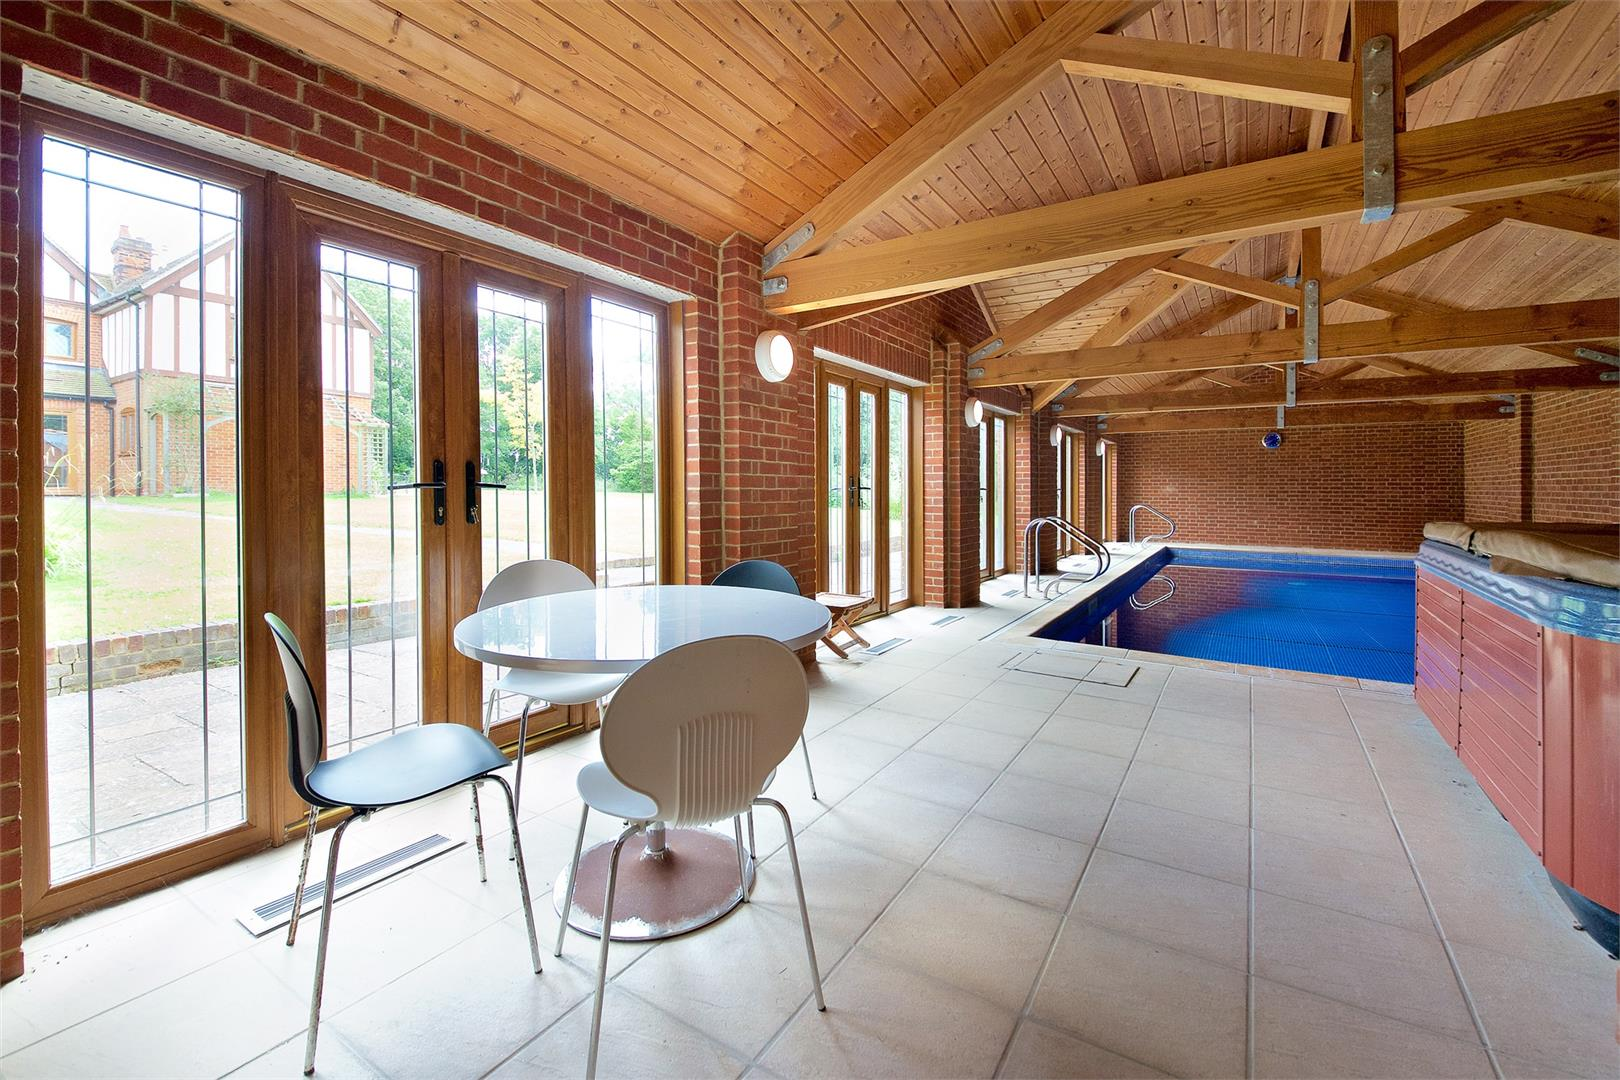 6 bed to rent in Elstree - (Property Image 13)